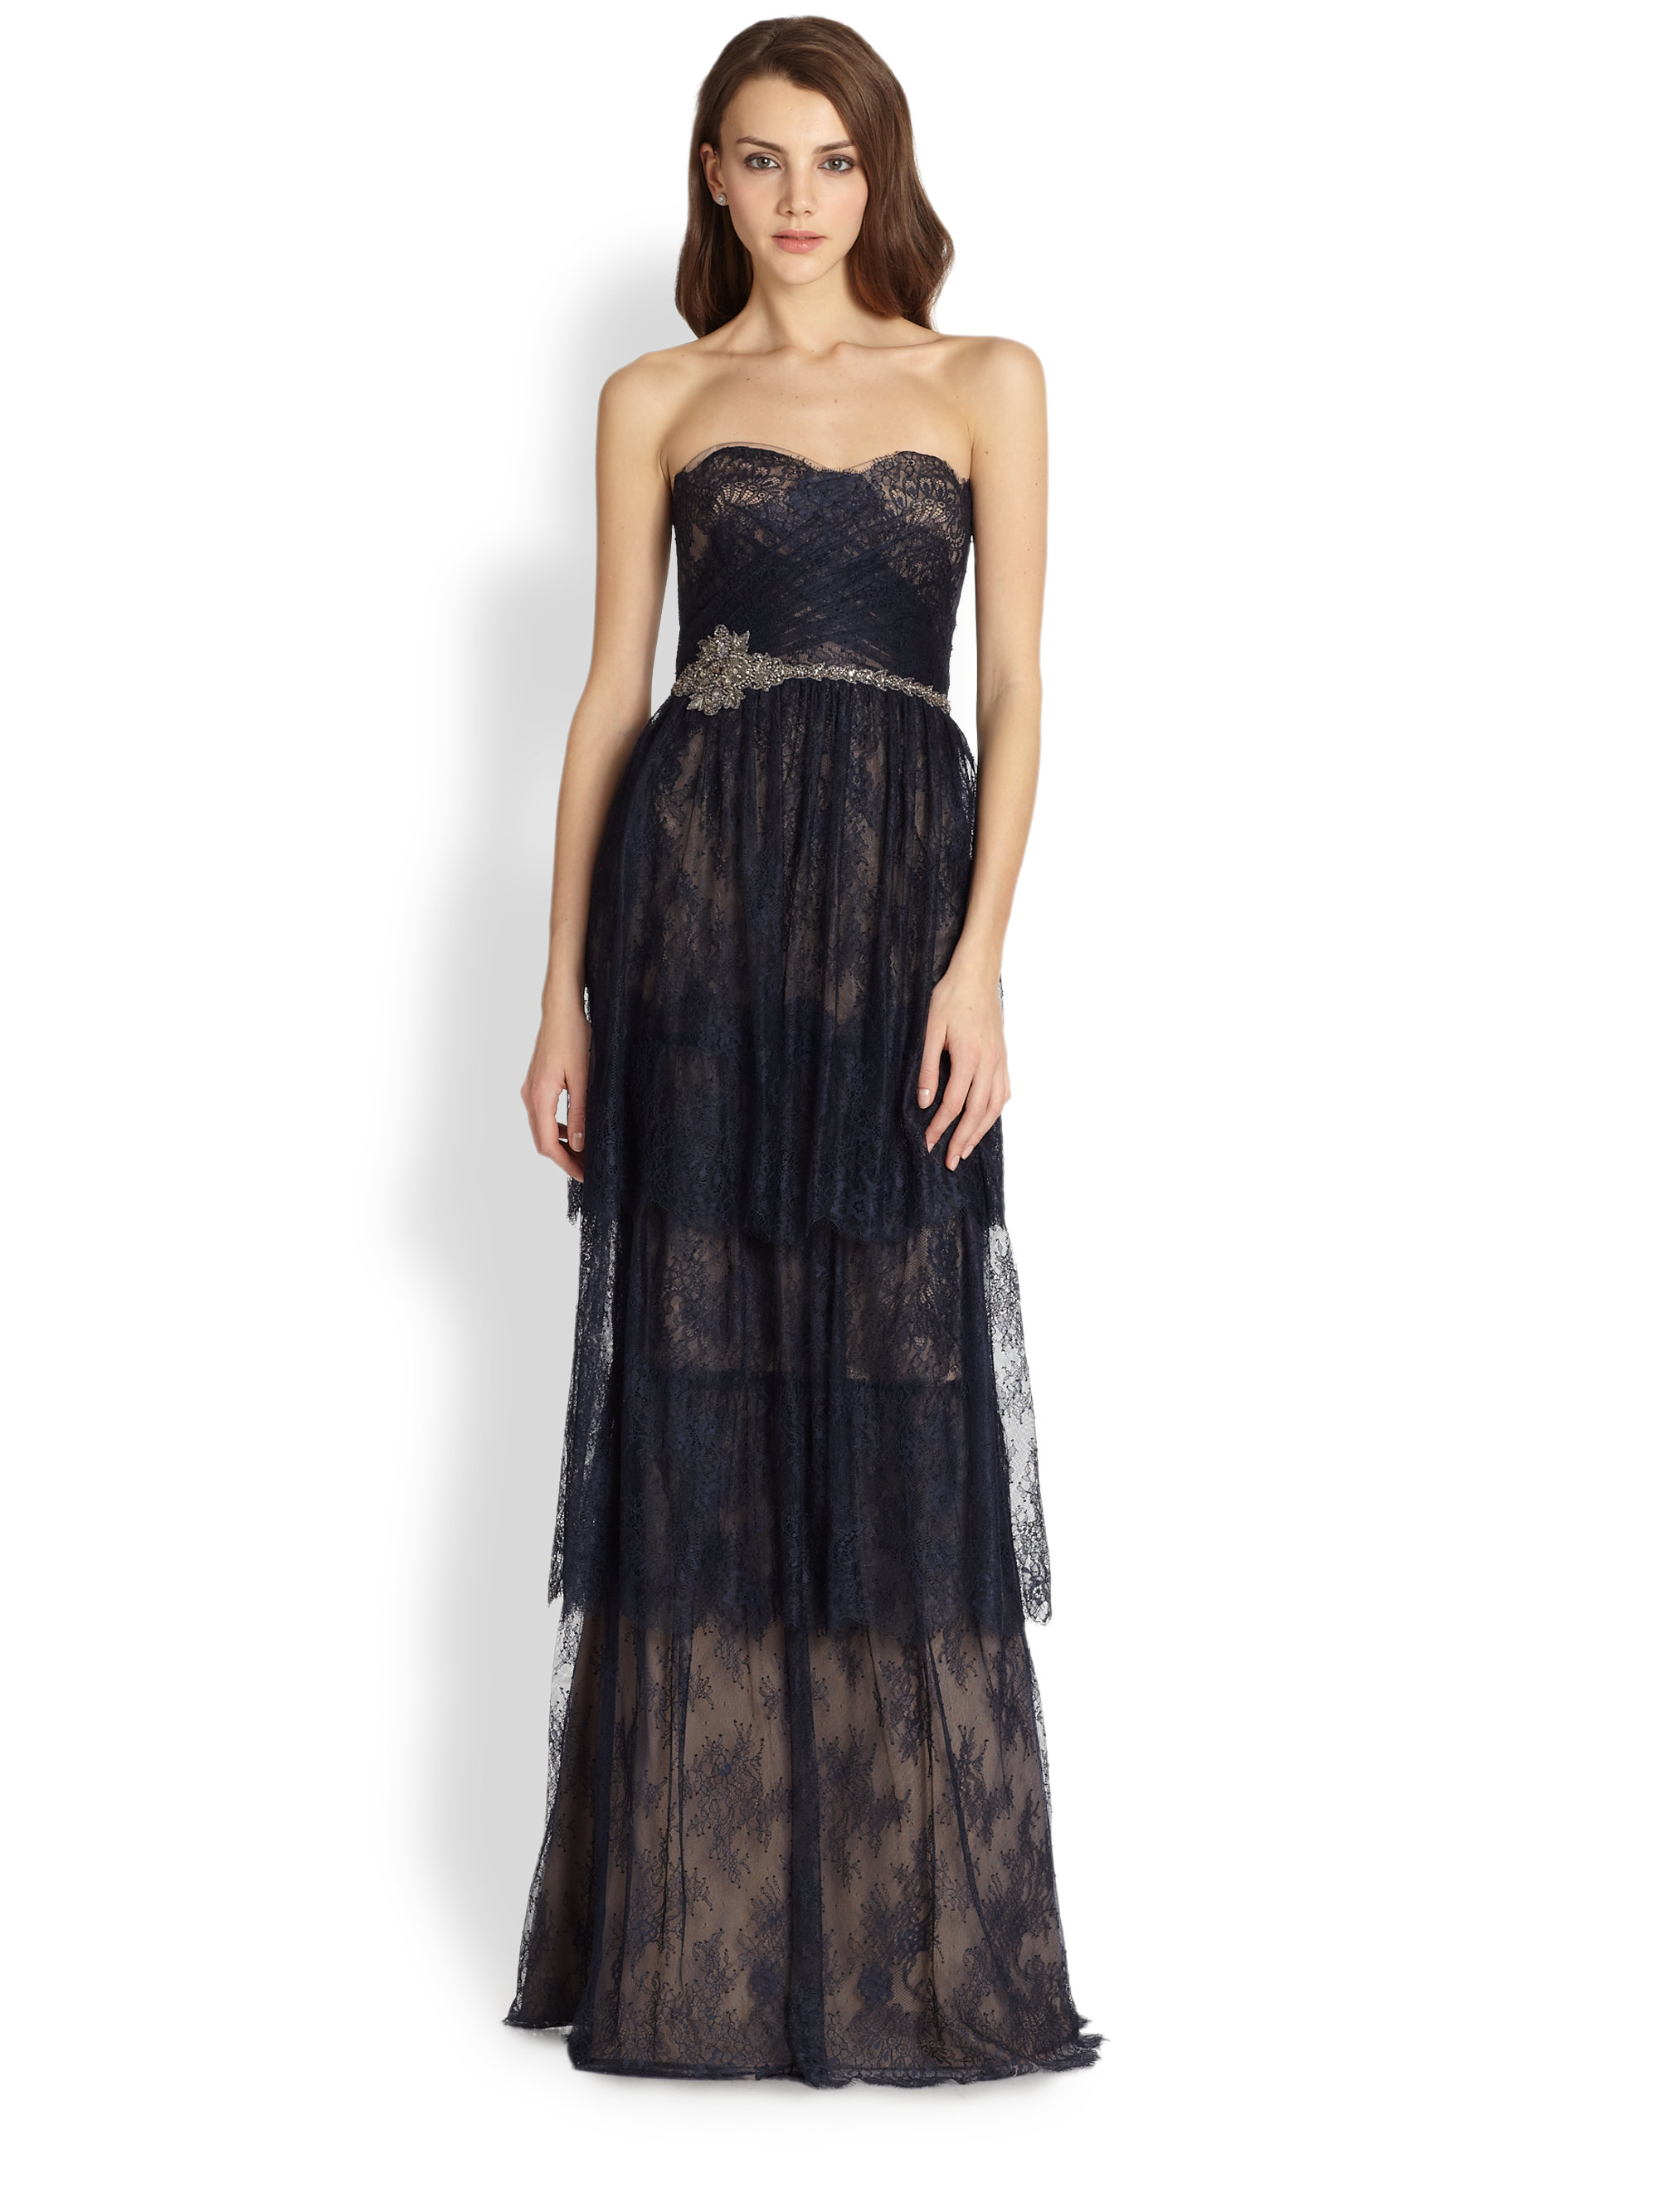 Notte by marchesa Strapless Tiered Lace Gown in Blue | Lyst